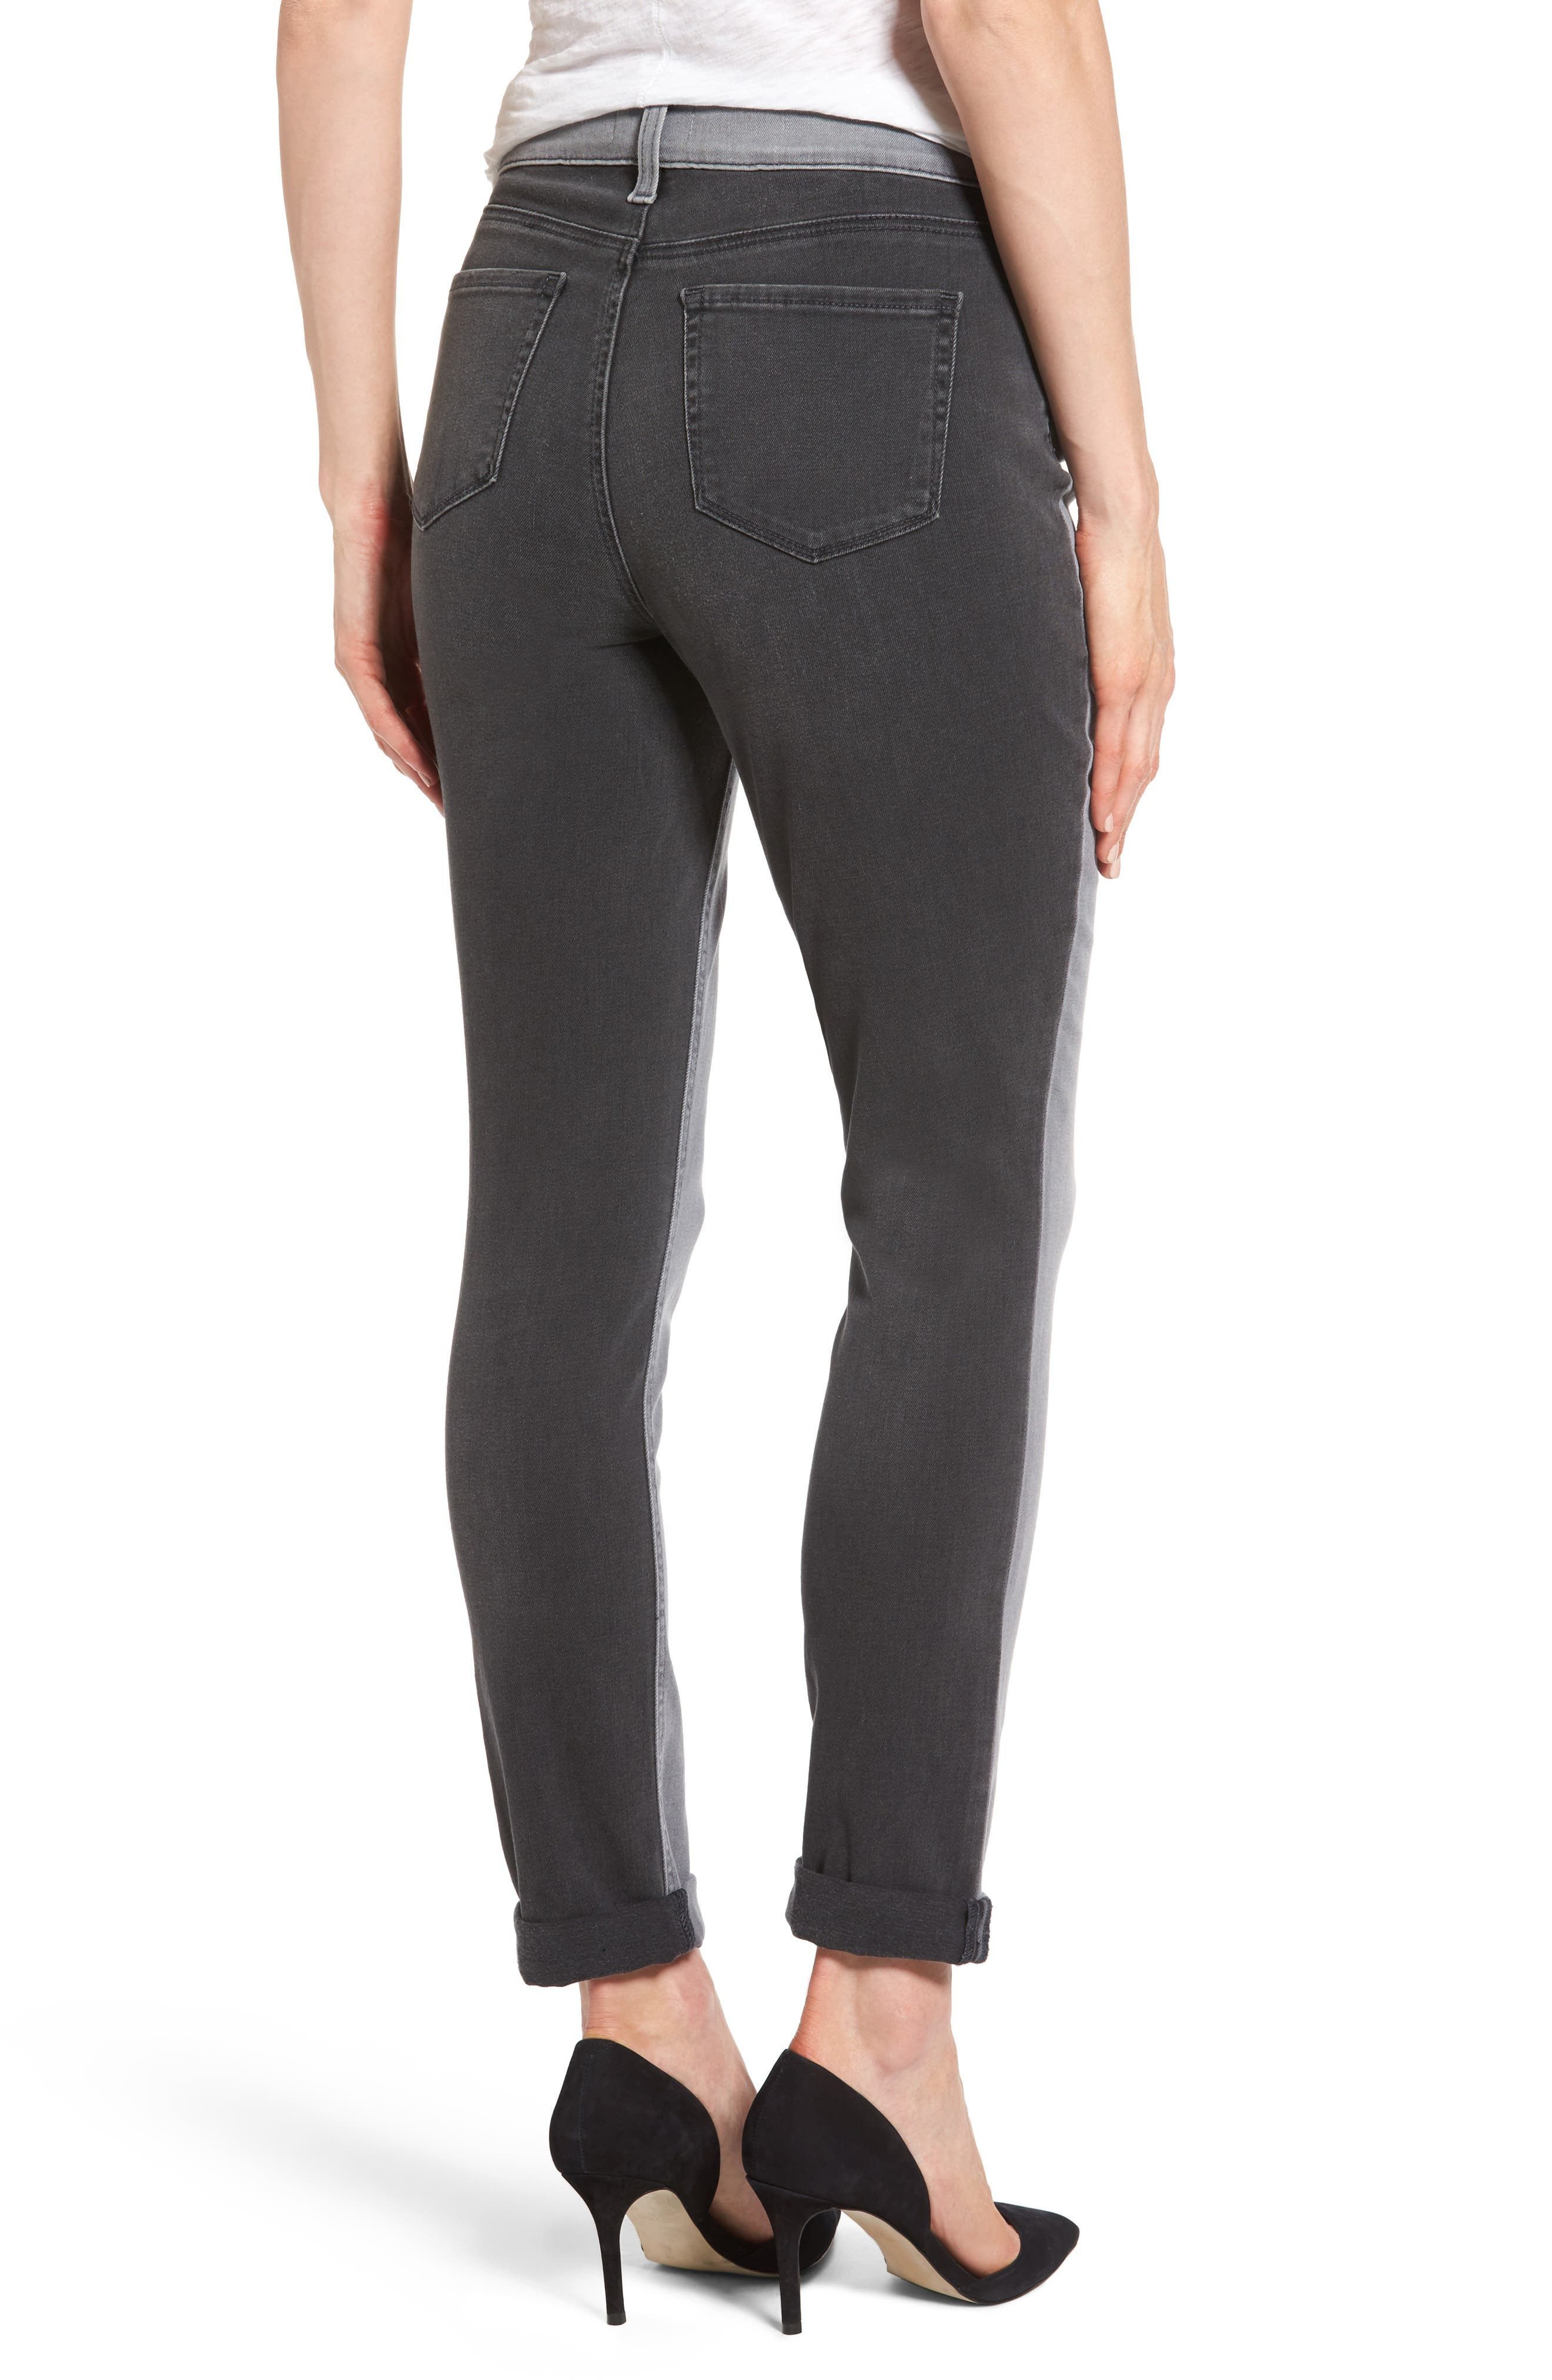 Two Tone Stretch Girlfriend Jeans,                             Alternate thumbnail 2, color,                             020